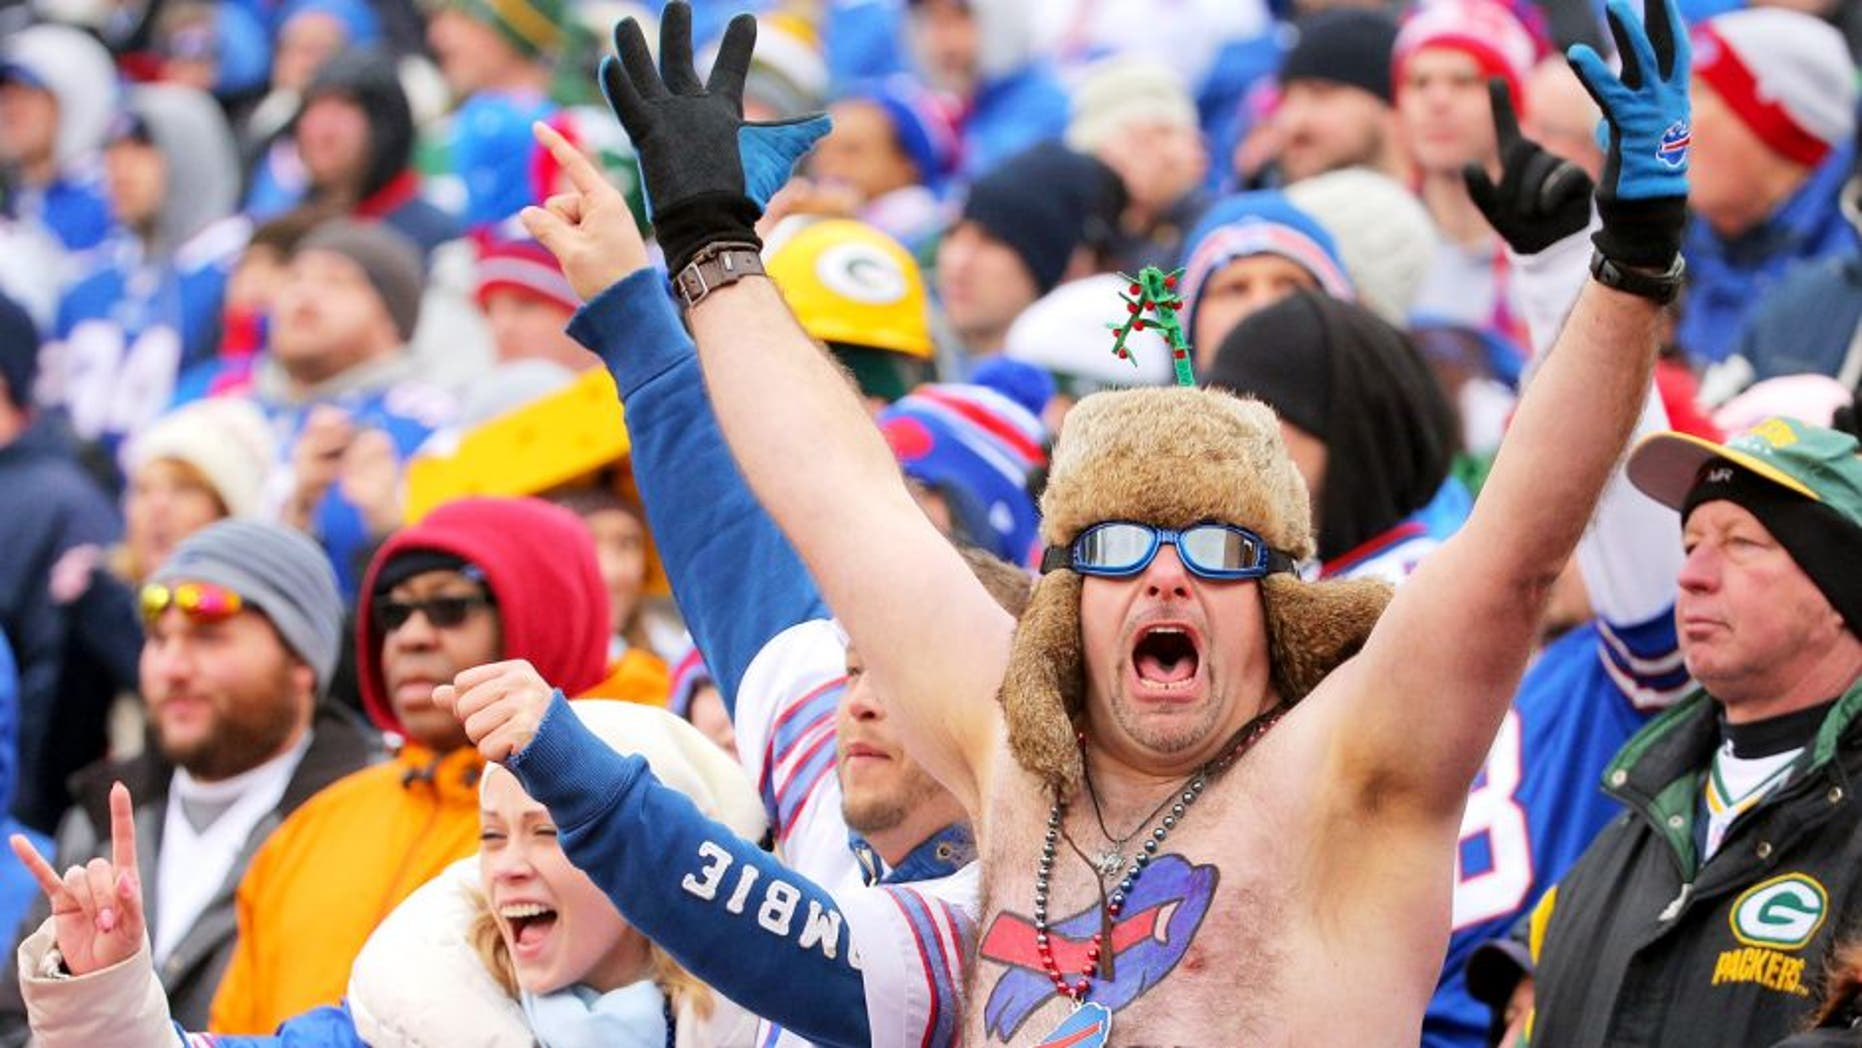 A Buffalo Bills fan watches the game against the Green Bay Packers at Ralph Wilson Stadium on December 14, 2014 in Orchard Park, New York. (Photo by Brett Carlsen/Getty Images)